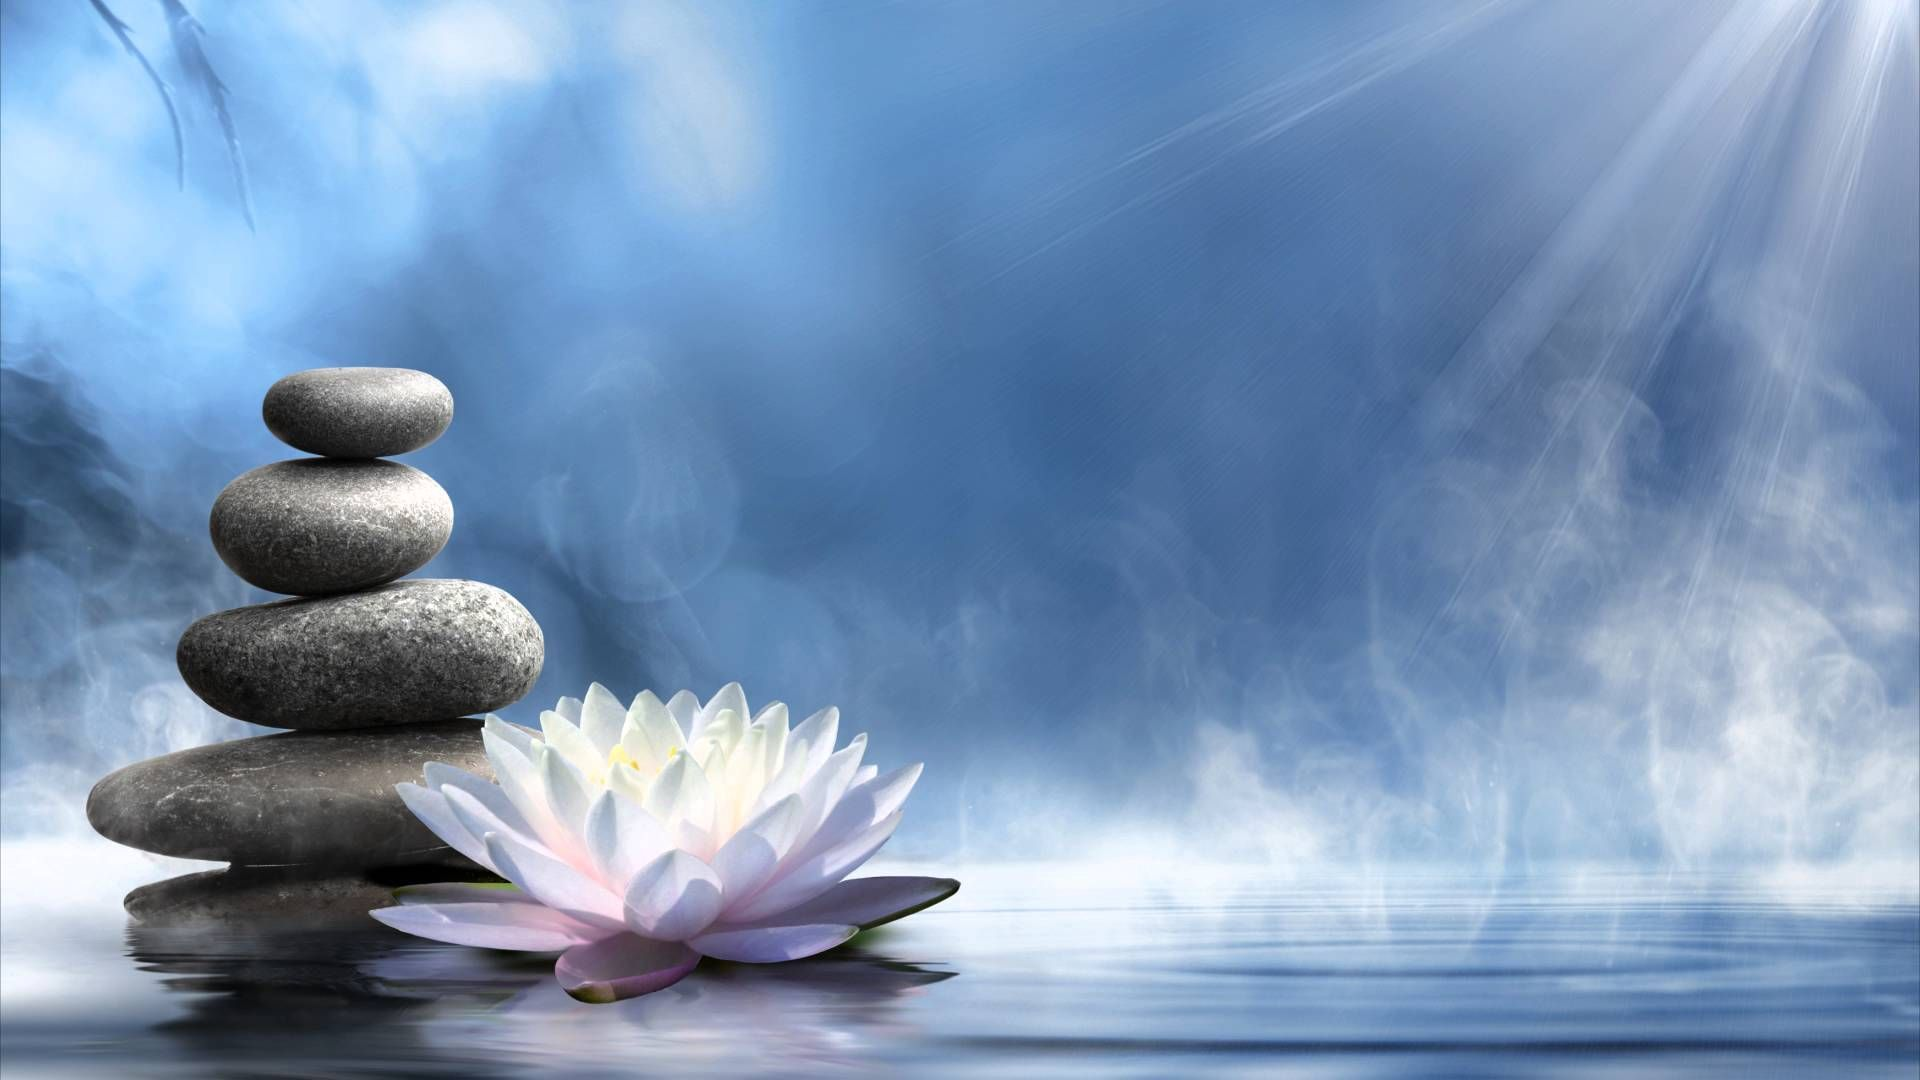 Zen Wallpaper 1920x1080: Top Free Zen Lotus Backgrounds